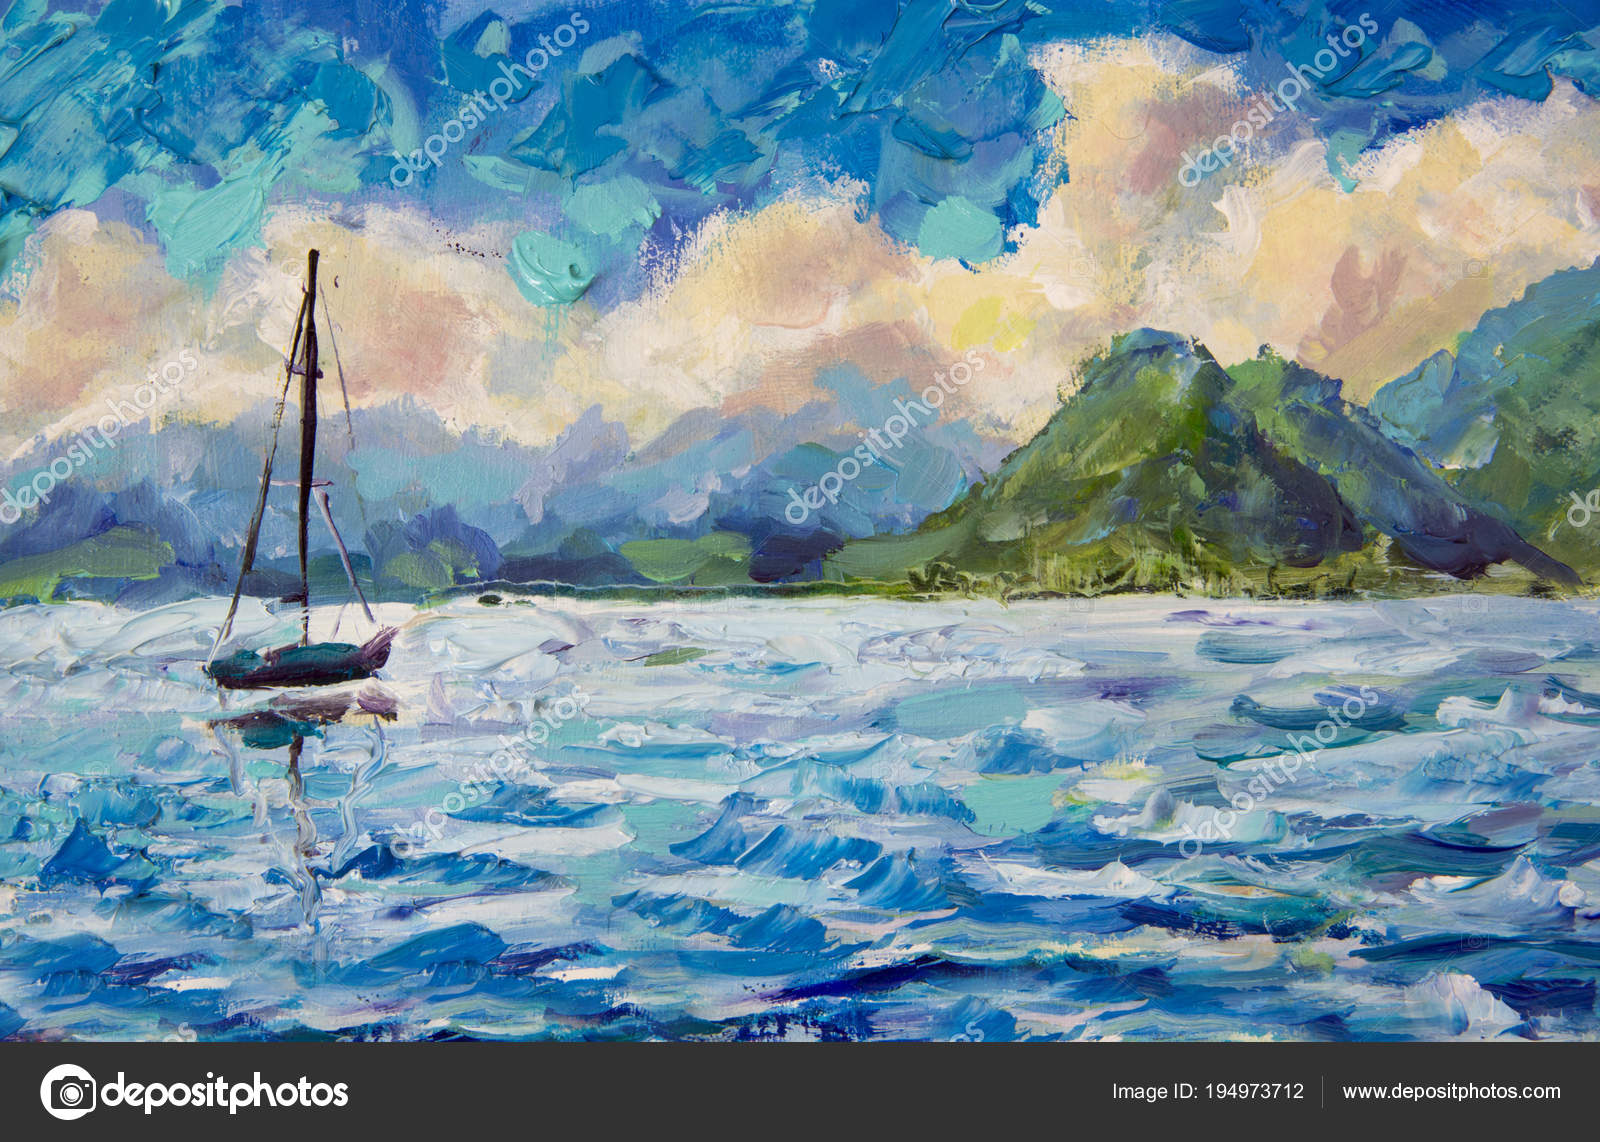 c5cb57c65 Painting seascape landscape Boat, yacht, sailboat in blue turquoise water  lake of ocean river against a background of beautiful green mountains.